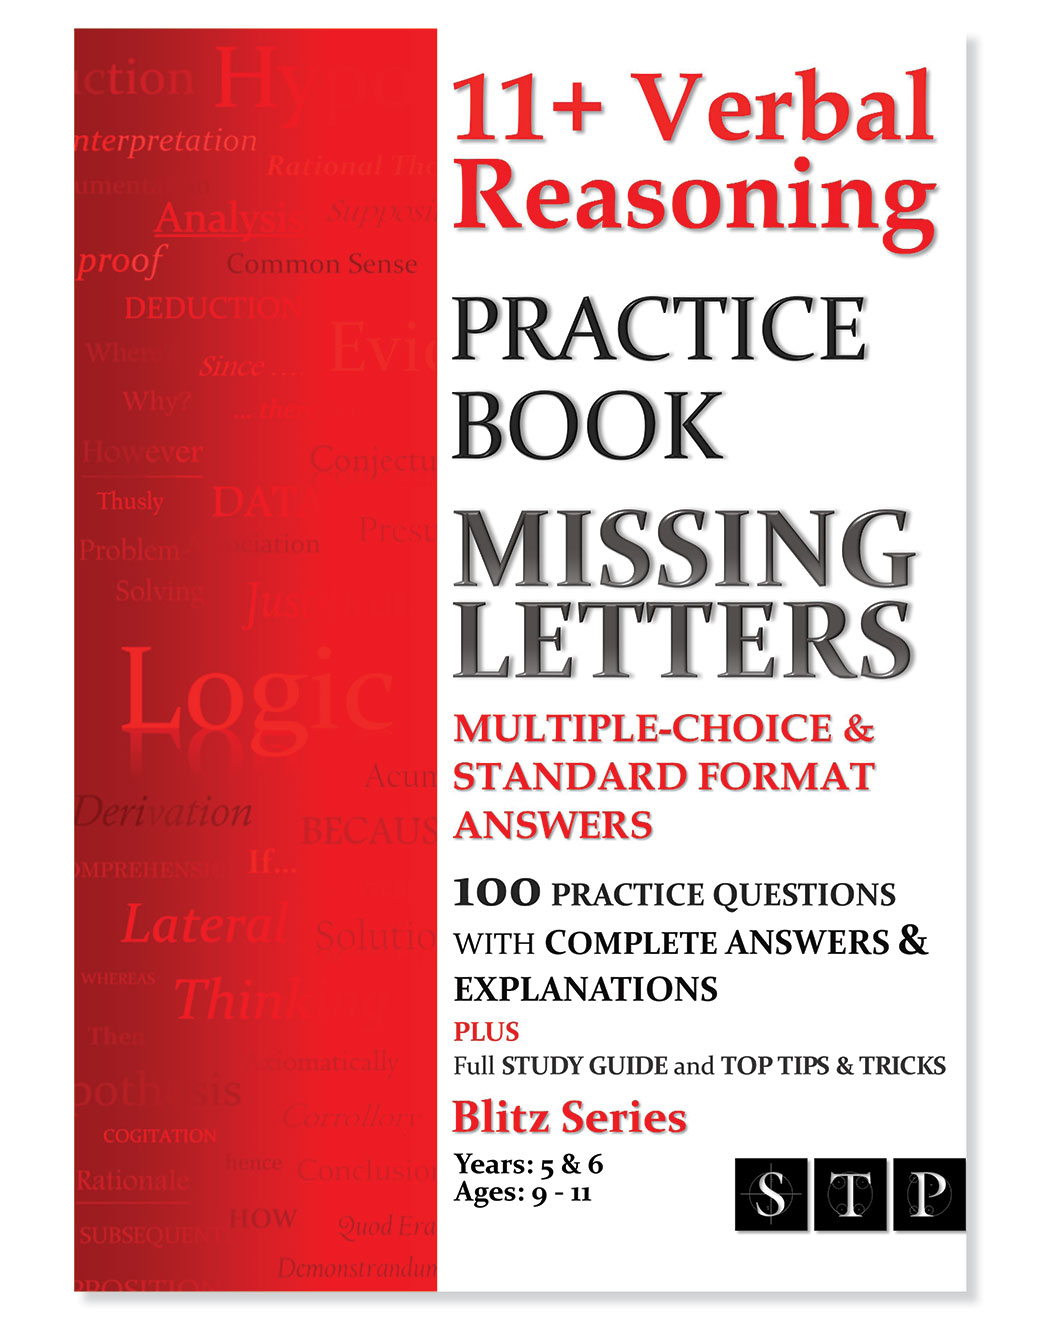 STP Books 11+ Verbal Reasoning Practice Book: Missing Letters: Multiple-Choice & Standard Format Answers (Ages 9-11: Years 5 & 6)